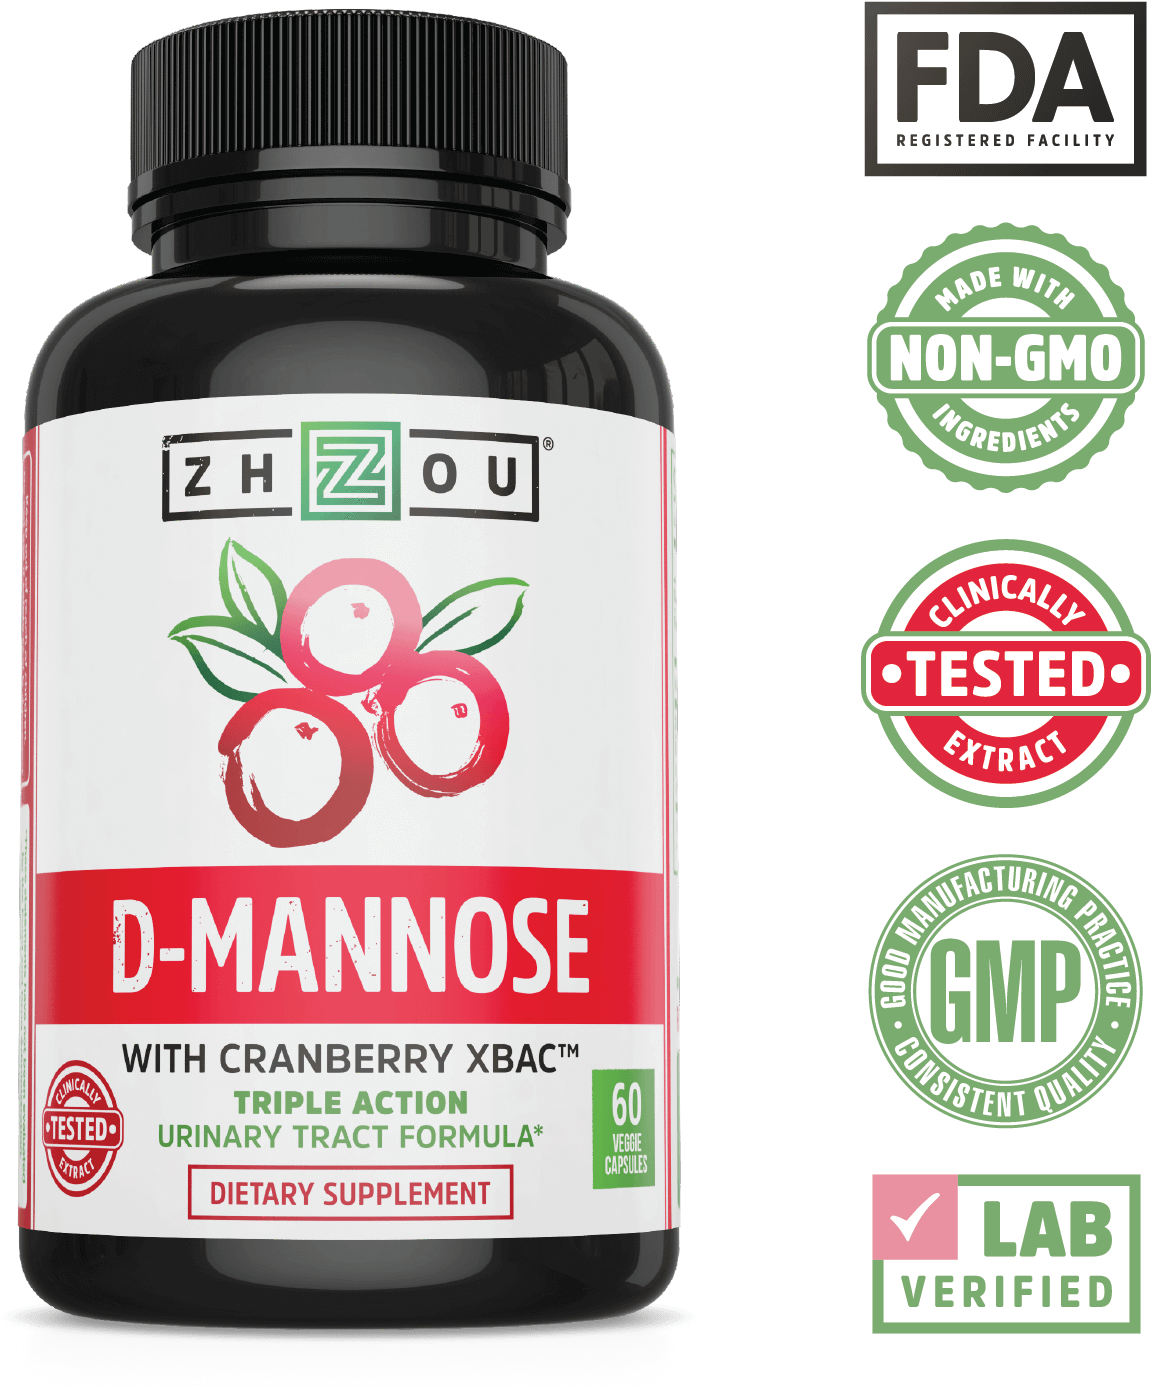 Transparent cranberry juice clipart - Non Gmo, Clinically Tested Extract, Lab Verified D - D Mannose Cranberry